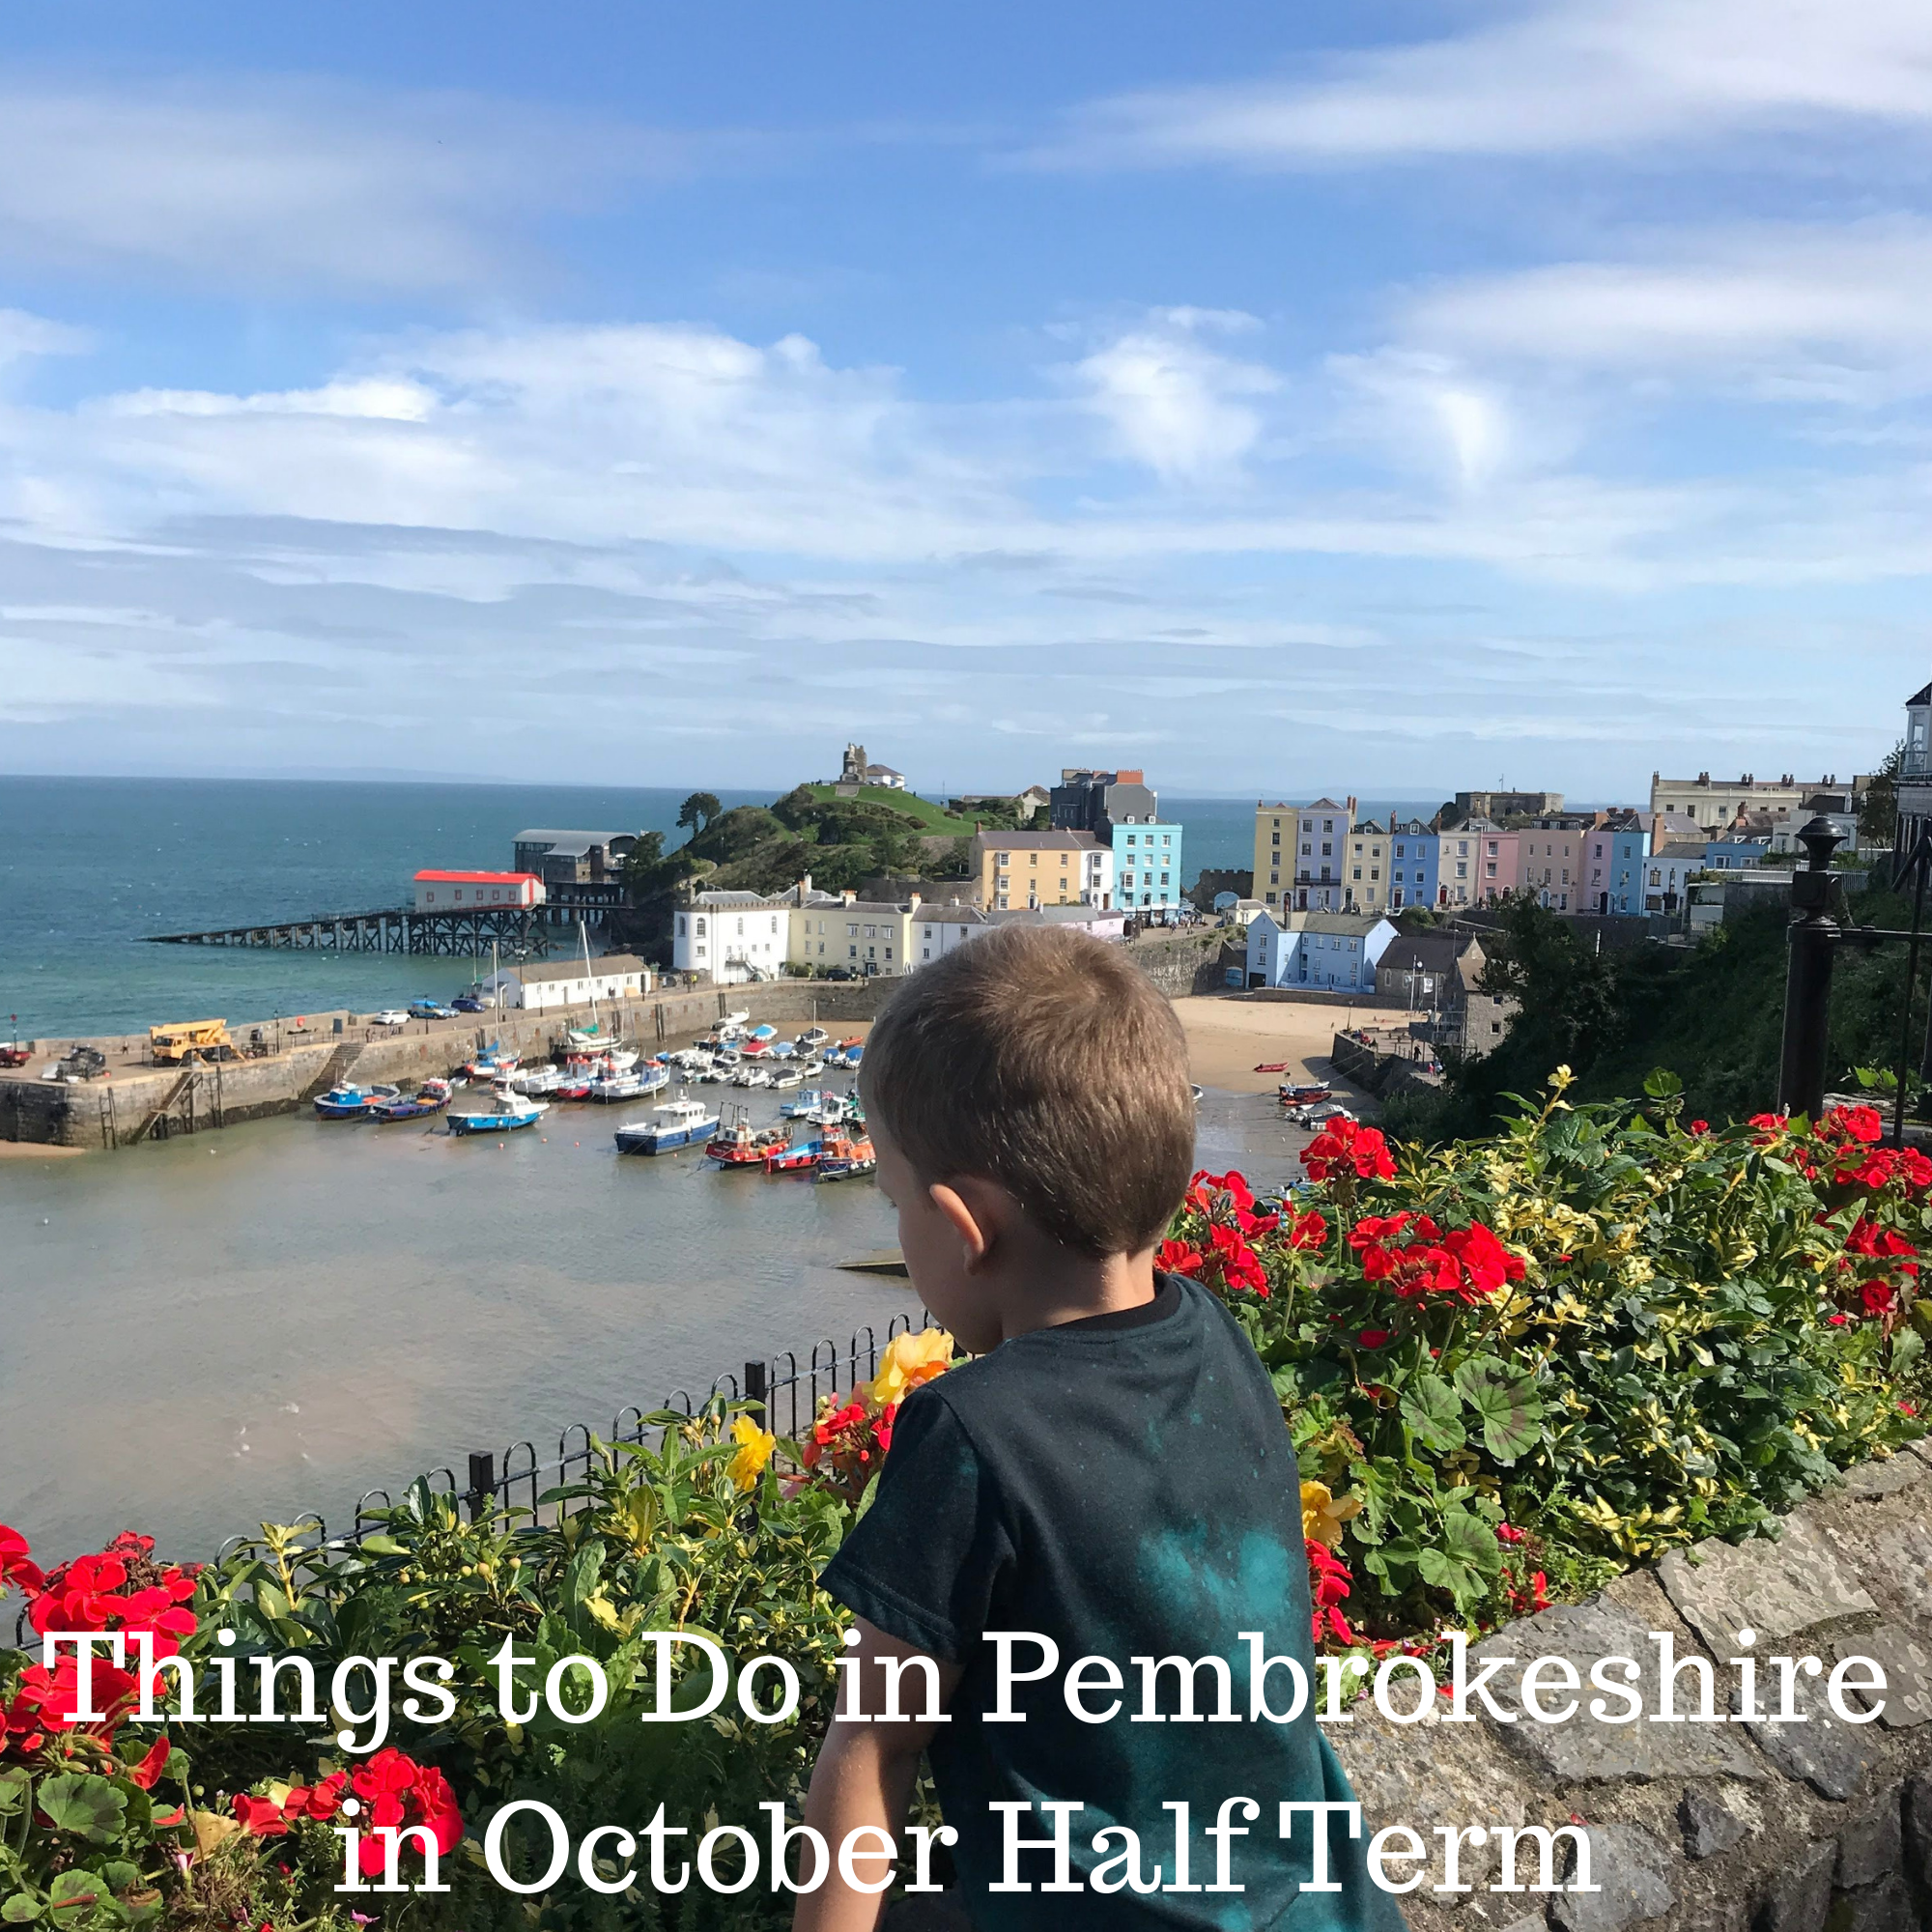 Things to Do in Pembrokeshire in October Half Term